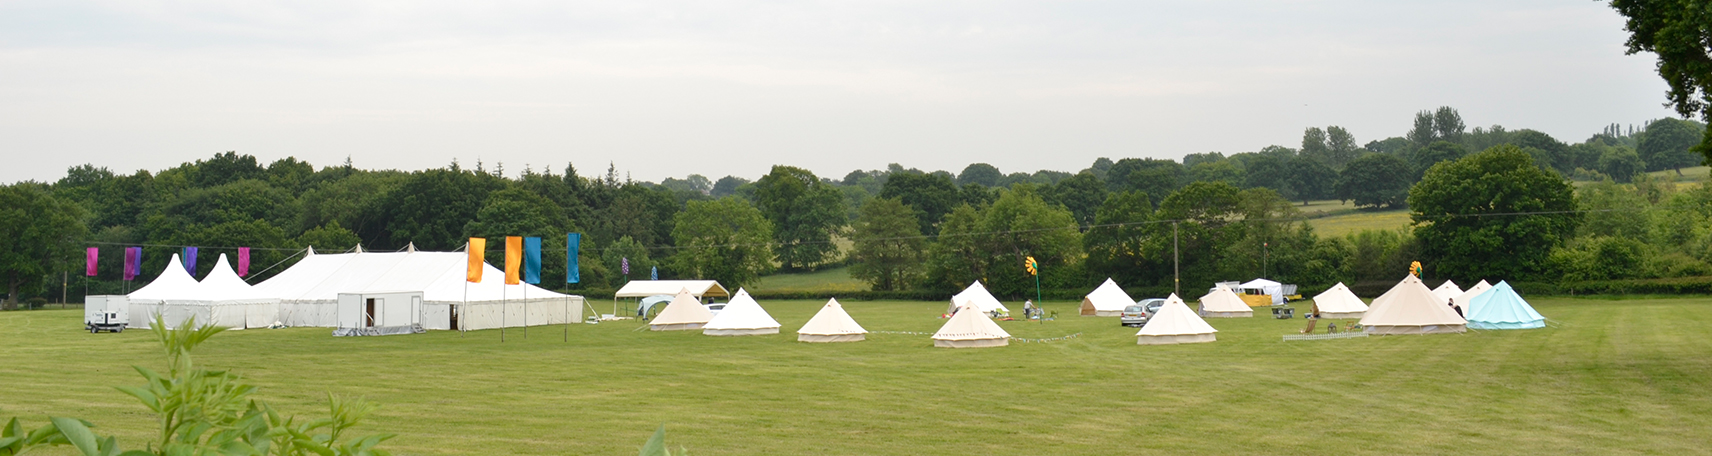 Group of bell tents set up for an event